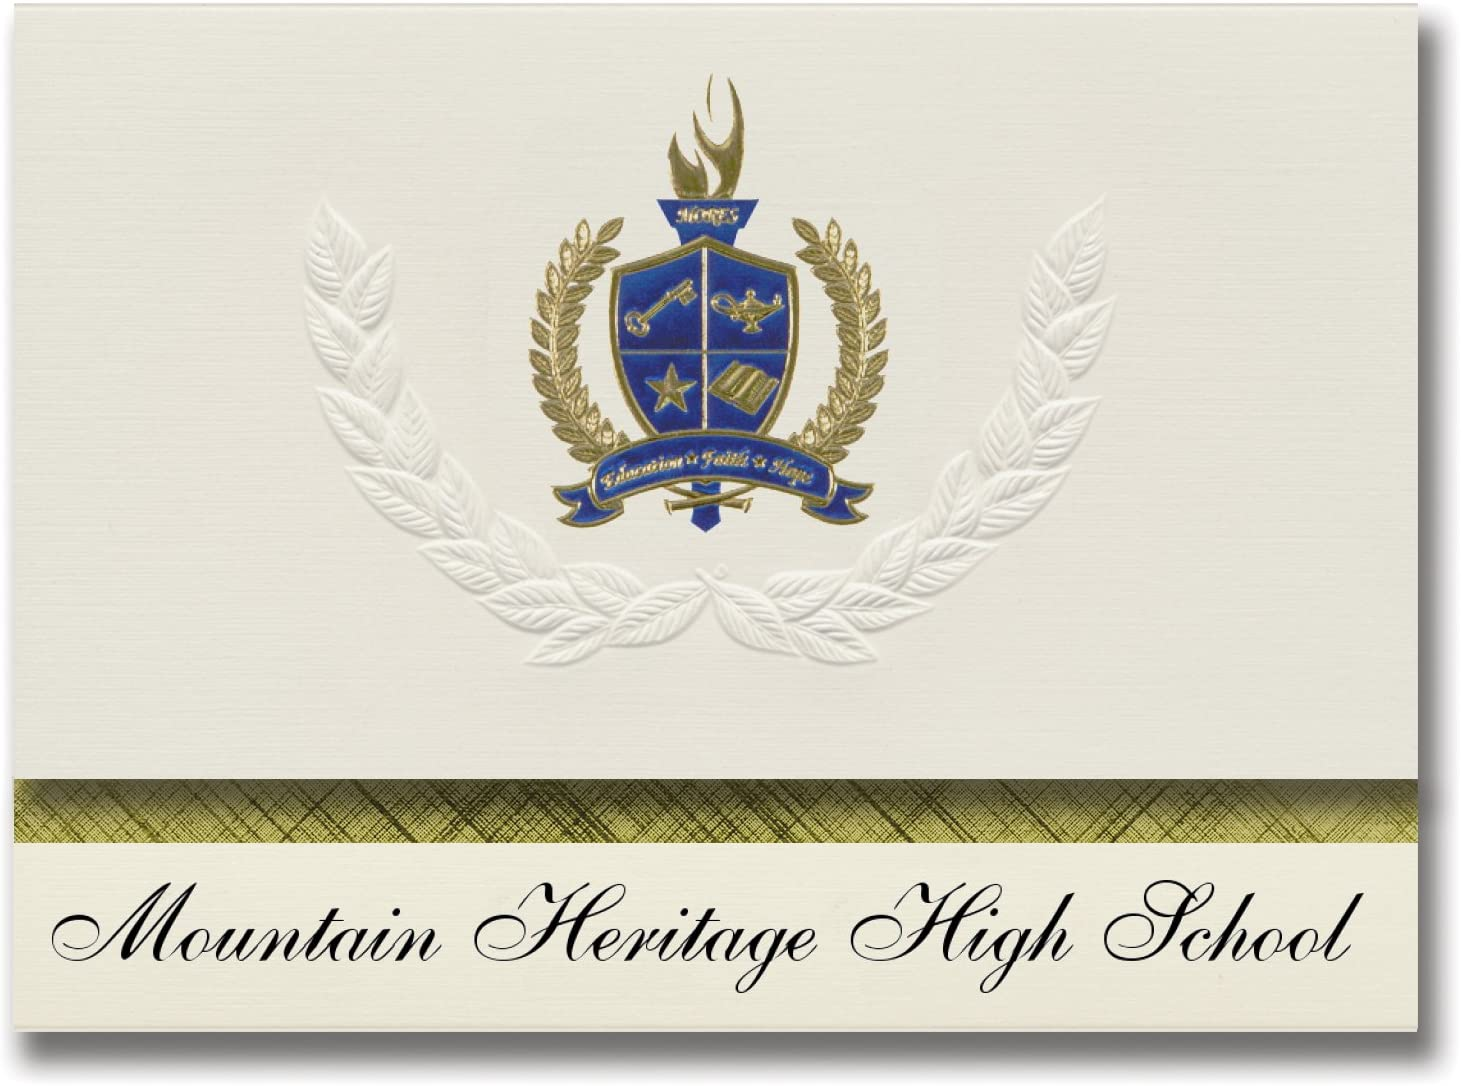 Signature Announcements Mountain Heritage High School (Burnsville, NC) Graduation Announcements, Presidential style, Basic package of 25 with Gold & Blue Metallic Foil seal